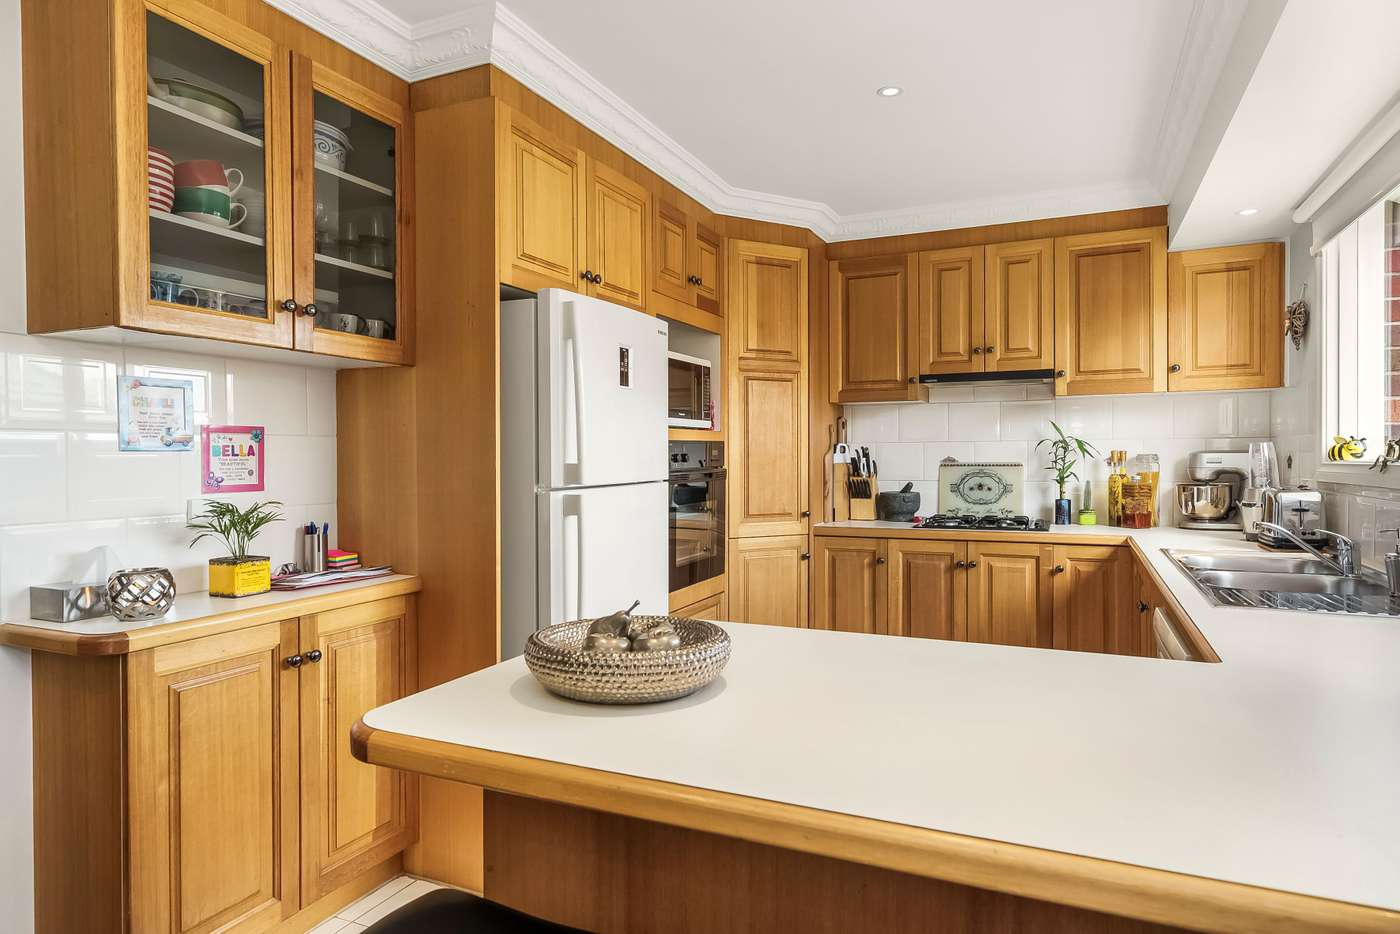 Main view of Homely unit listing, 1/16 Charlton Street, Mount Waverley VIC 3149